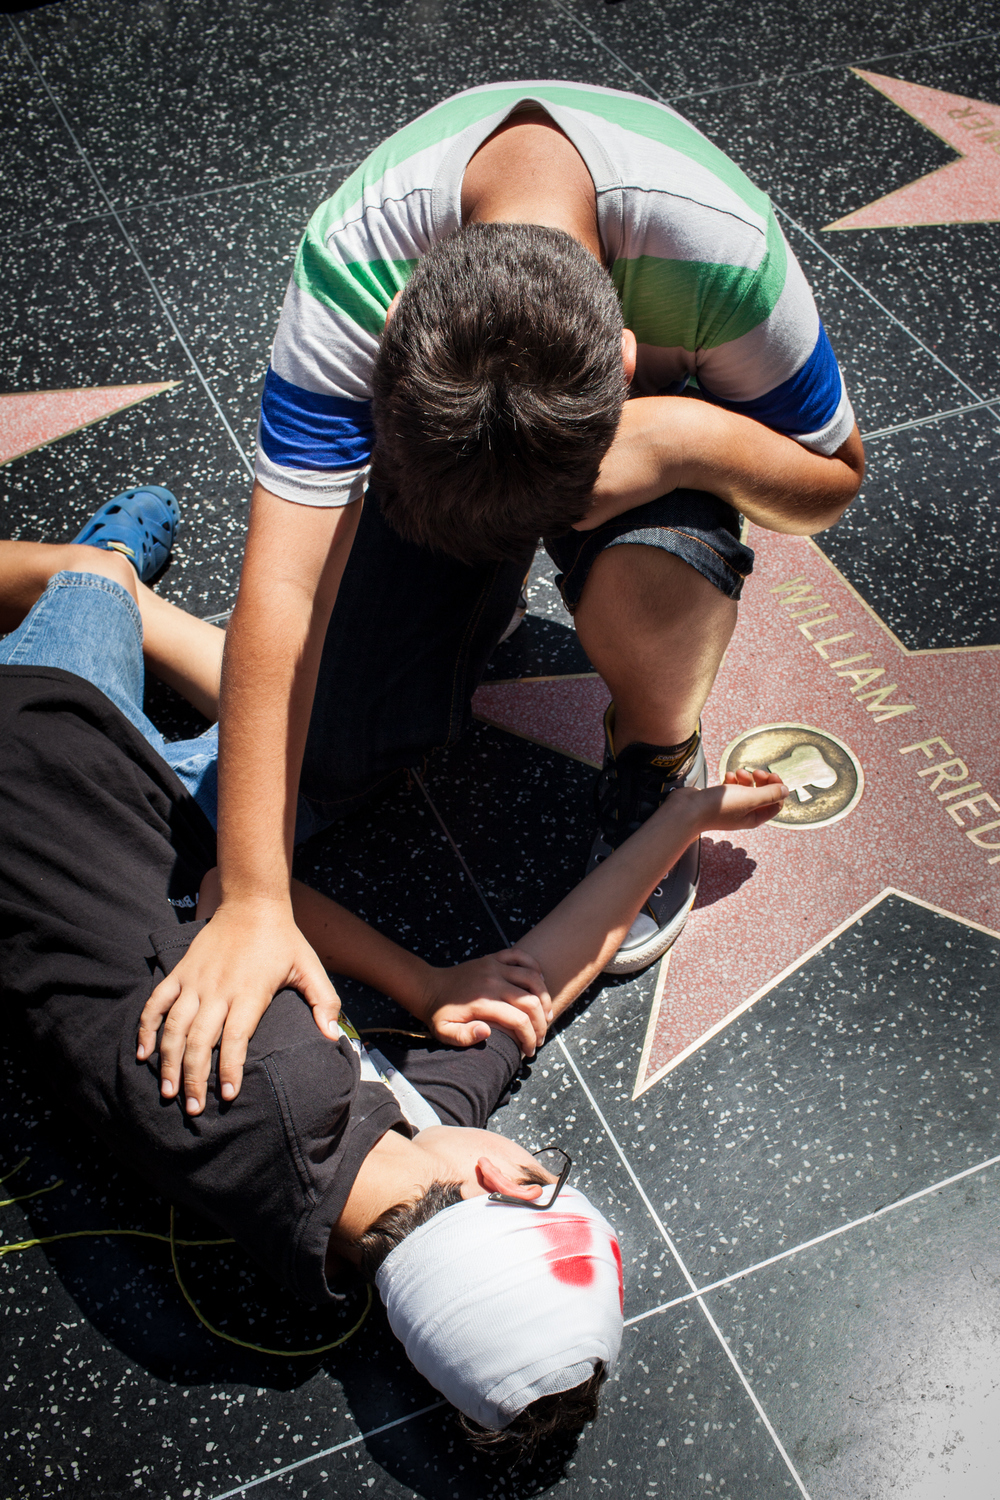 A moment of grief reenacted on the famous walk of fame.